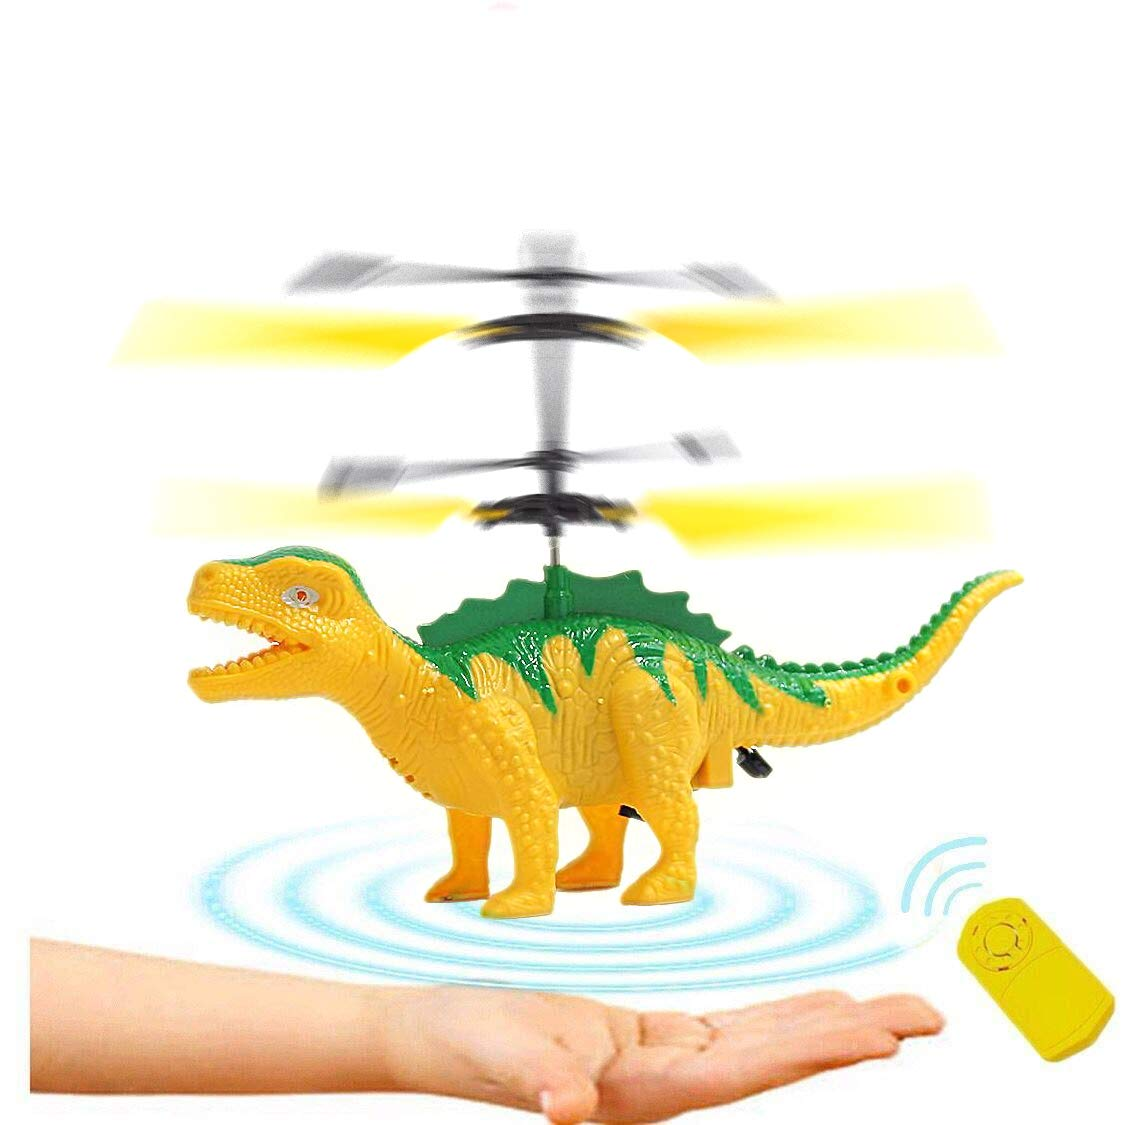 Anda RC Flying Helicopter Dinosaurs Dragon Toys for 6 Year Old Boys Girls Kids, Mini Remote and Hand Controlled Dinosaurs Helicopter for Birthday Holiday Xmas by Anda